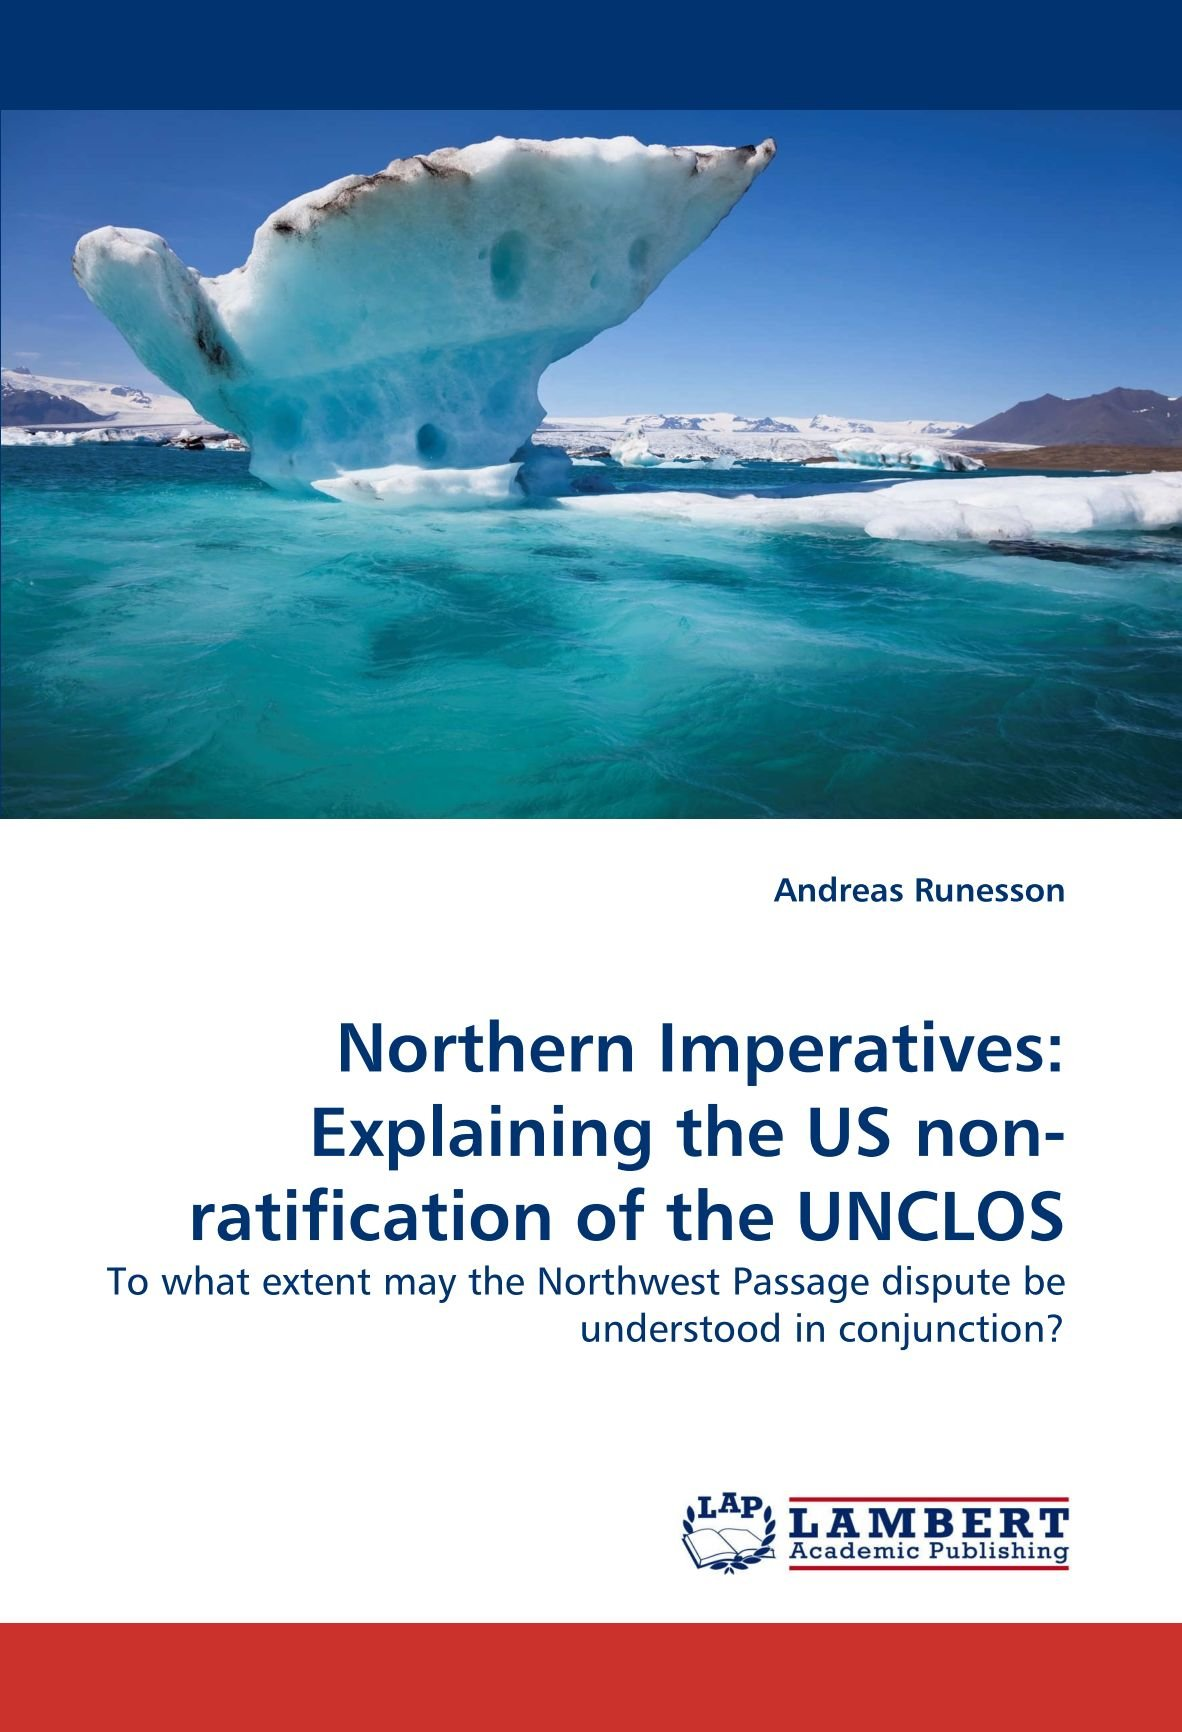 Download Northern Imperatives: Explaining the US non-ratification of the UNCLOS: To what extent may the Northwest Passage dispute be understood in conjunction? pdf